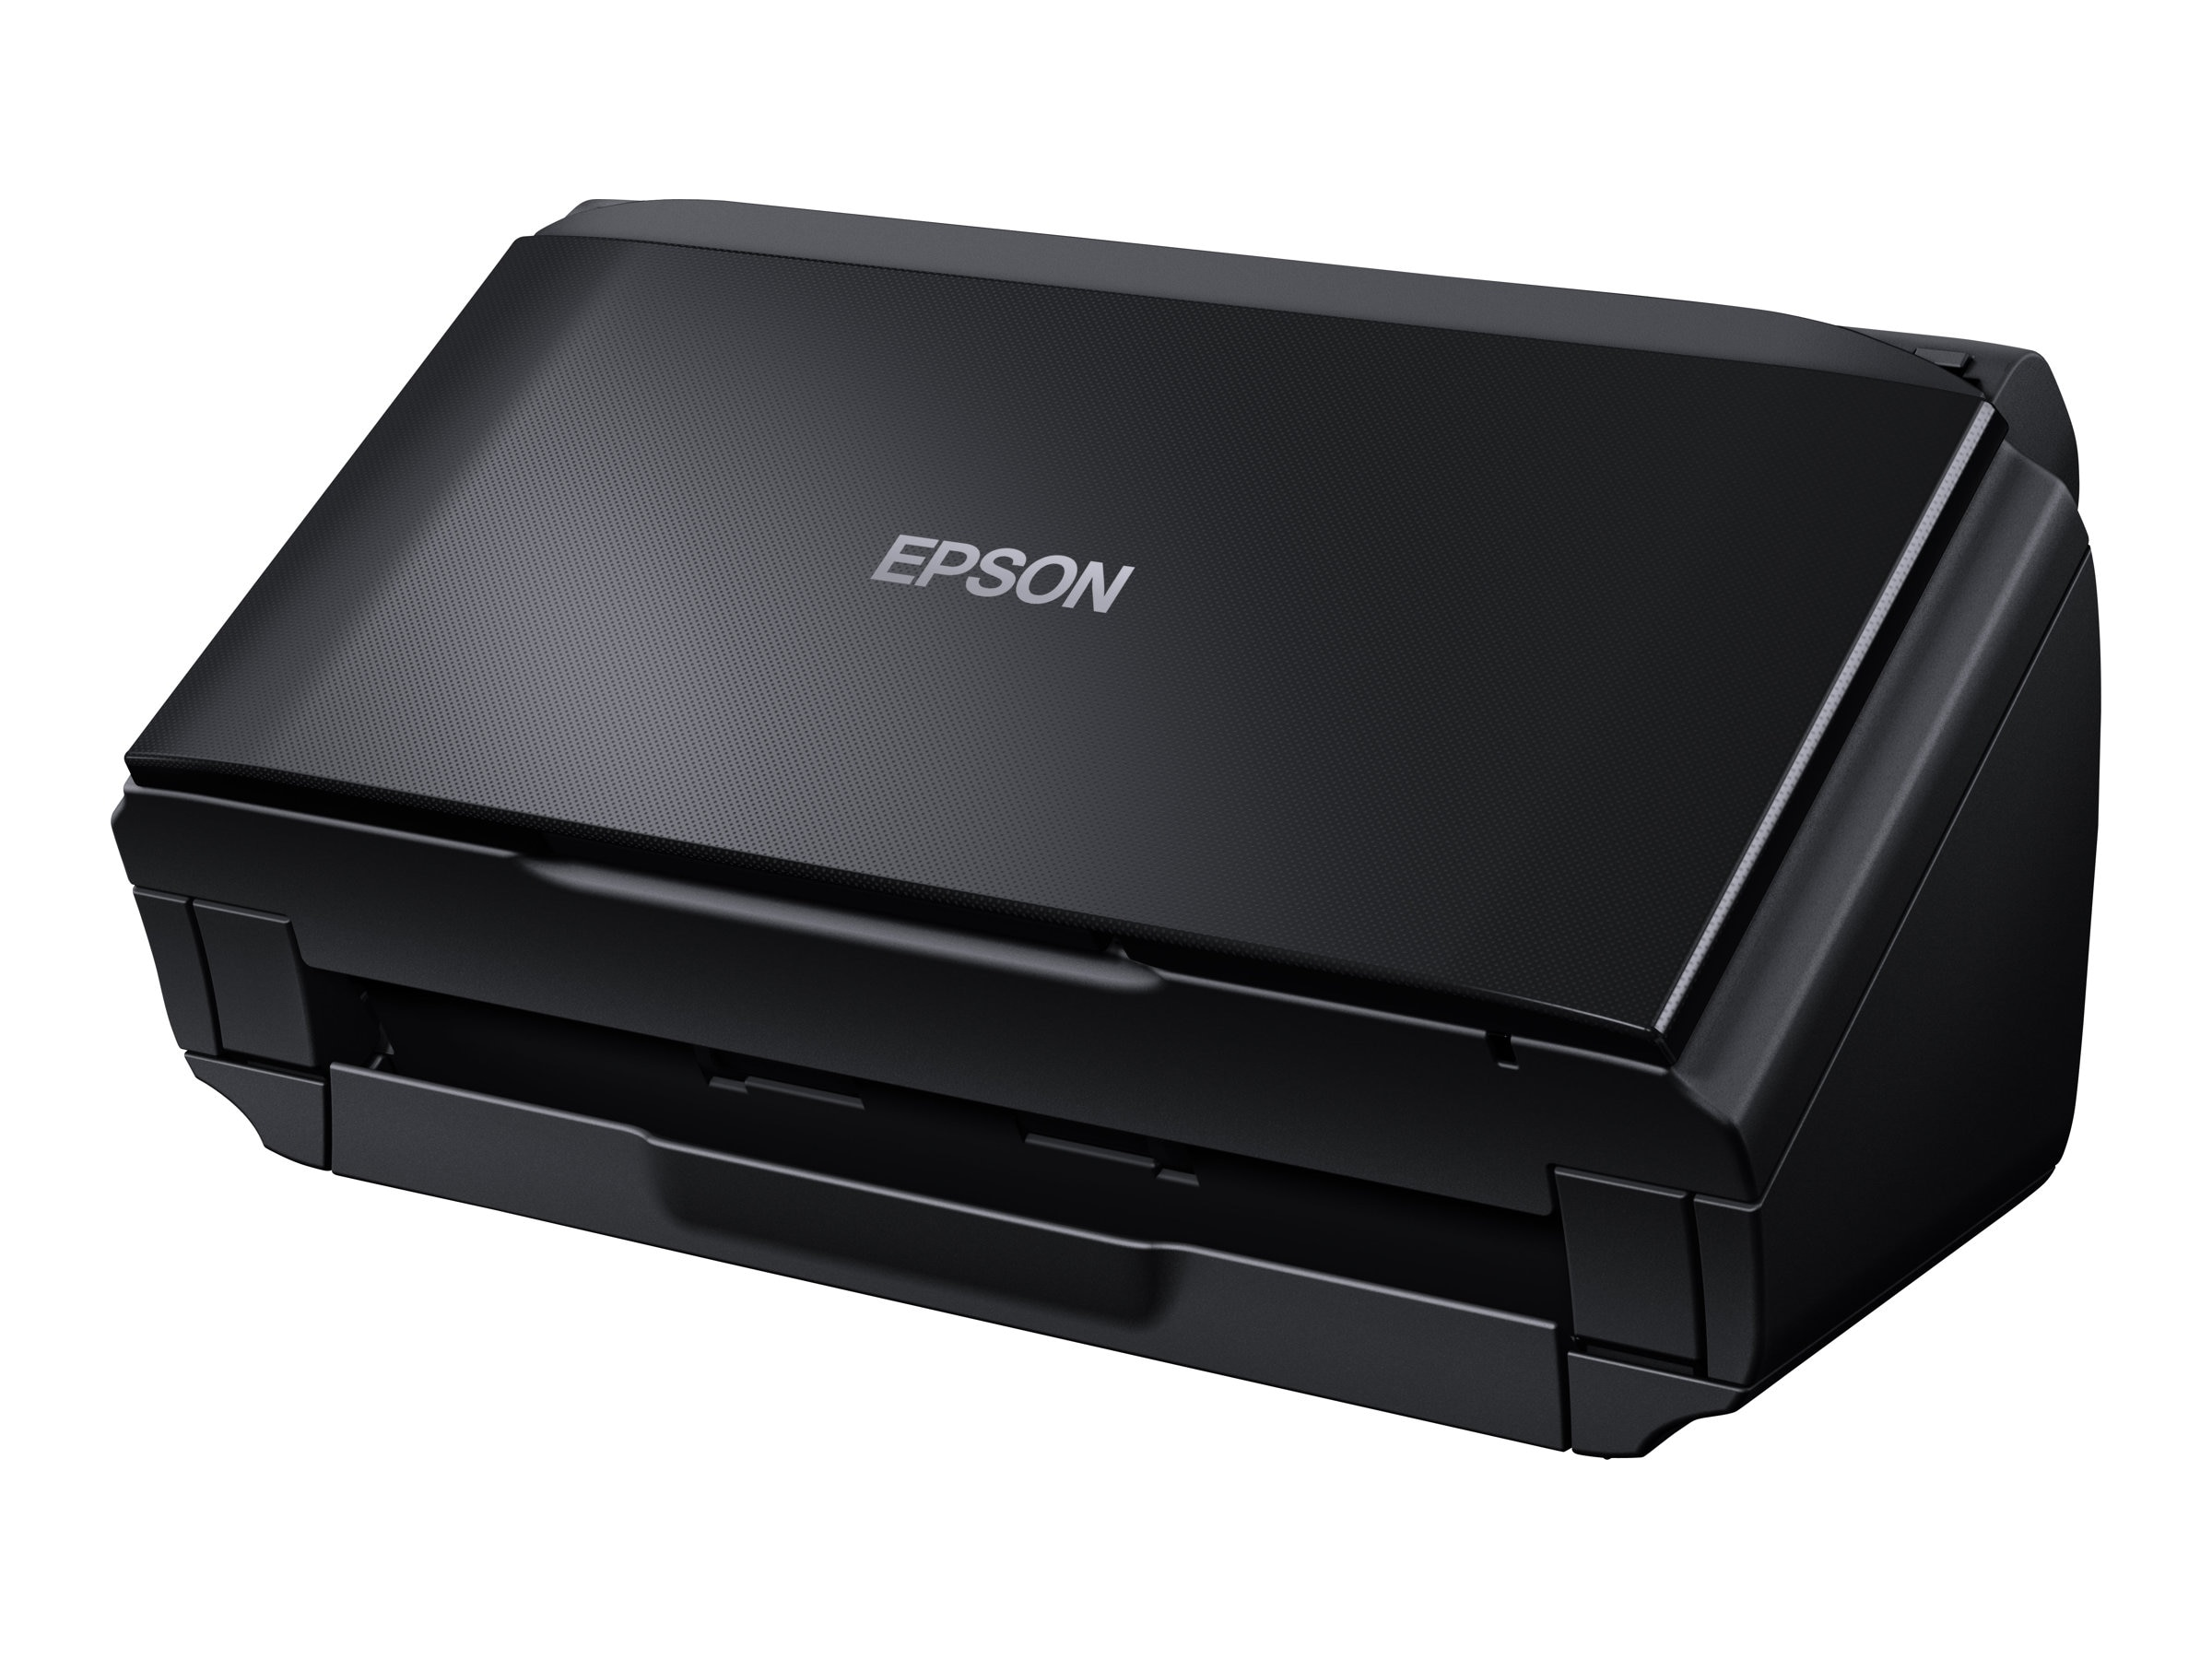 Epson WorkForce DS-510 26ppm 50-page ADF Document Scanner, B11B209201